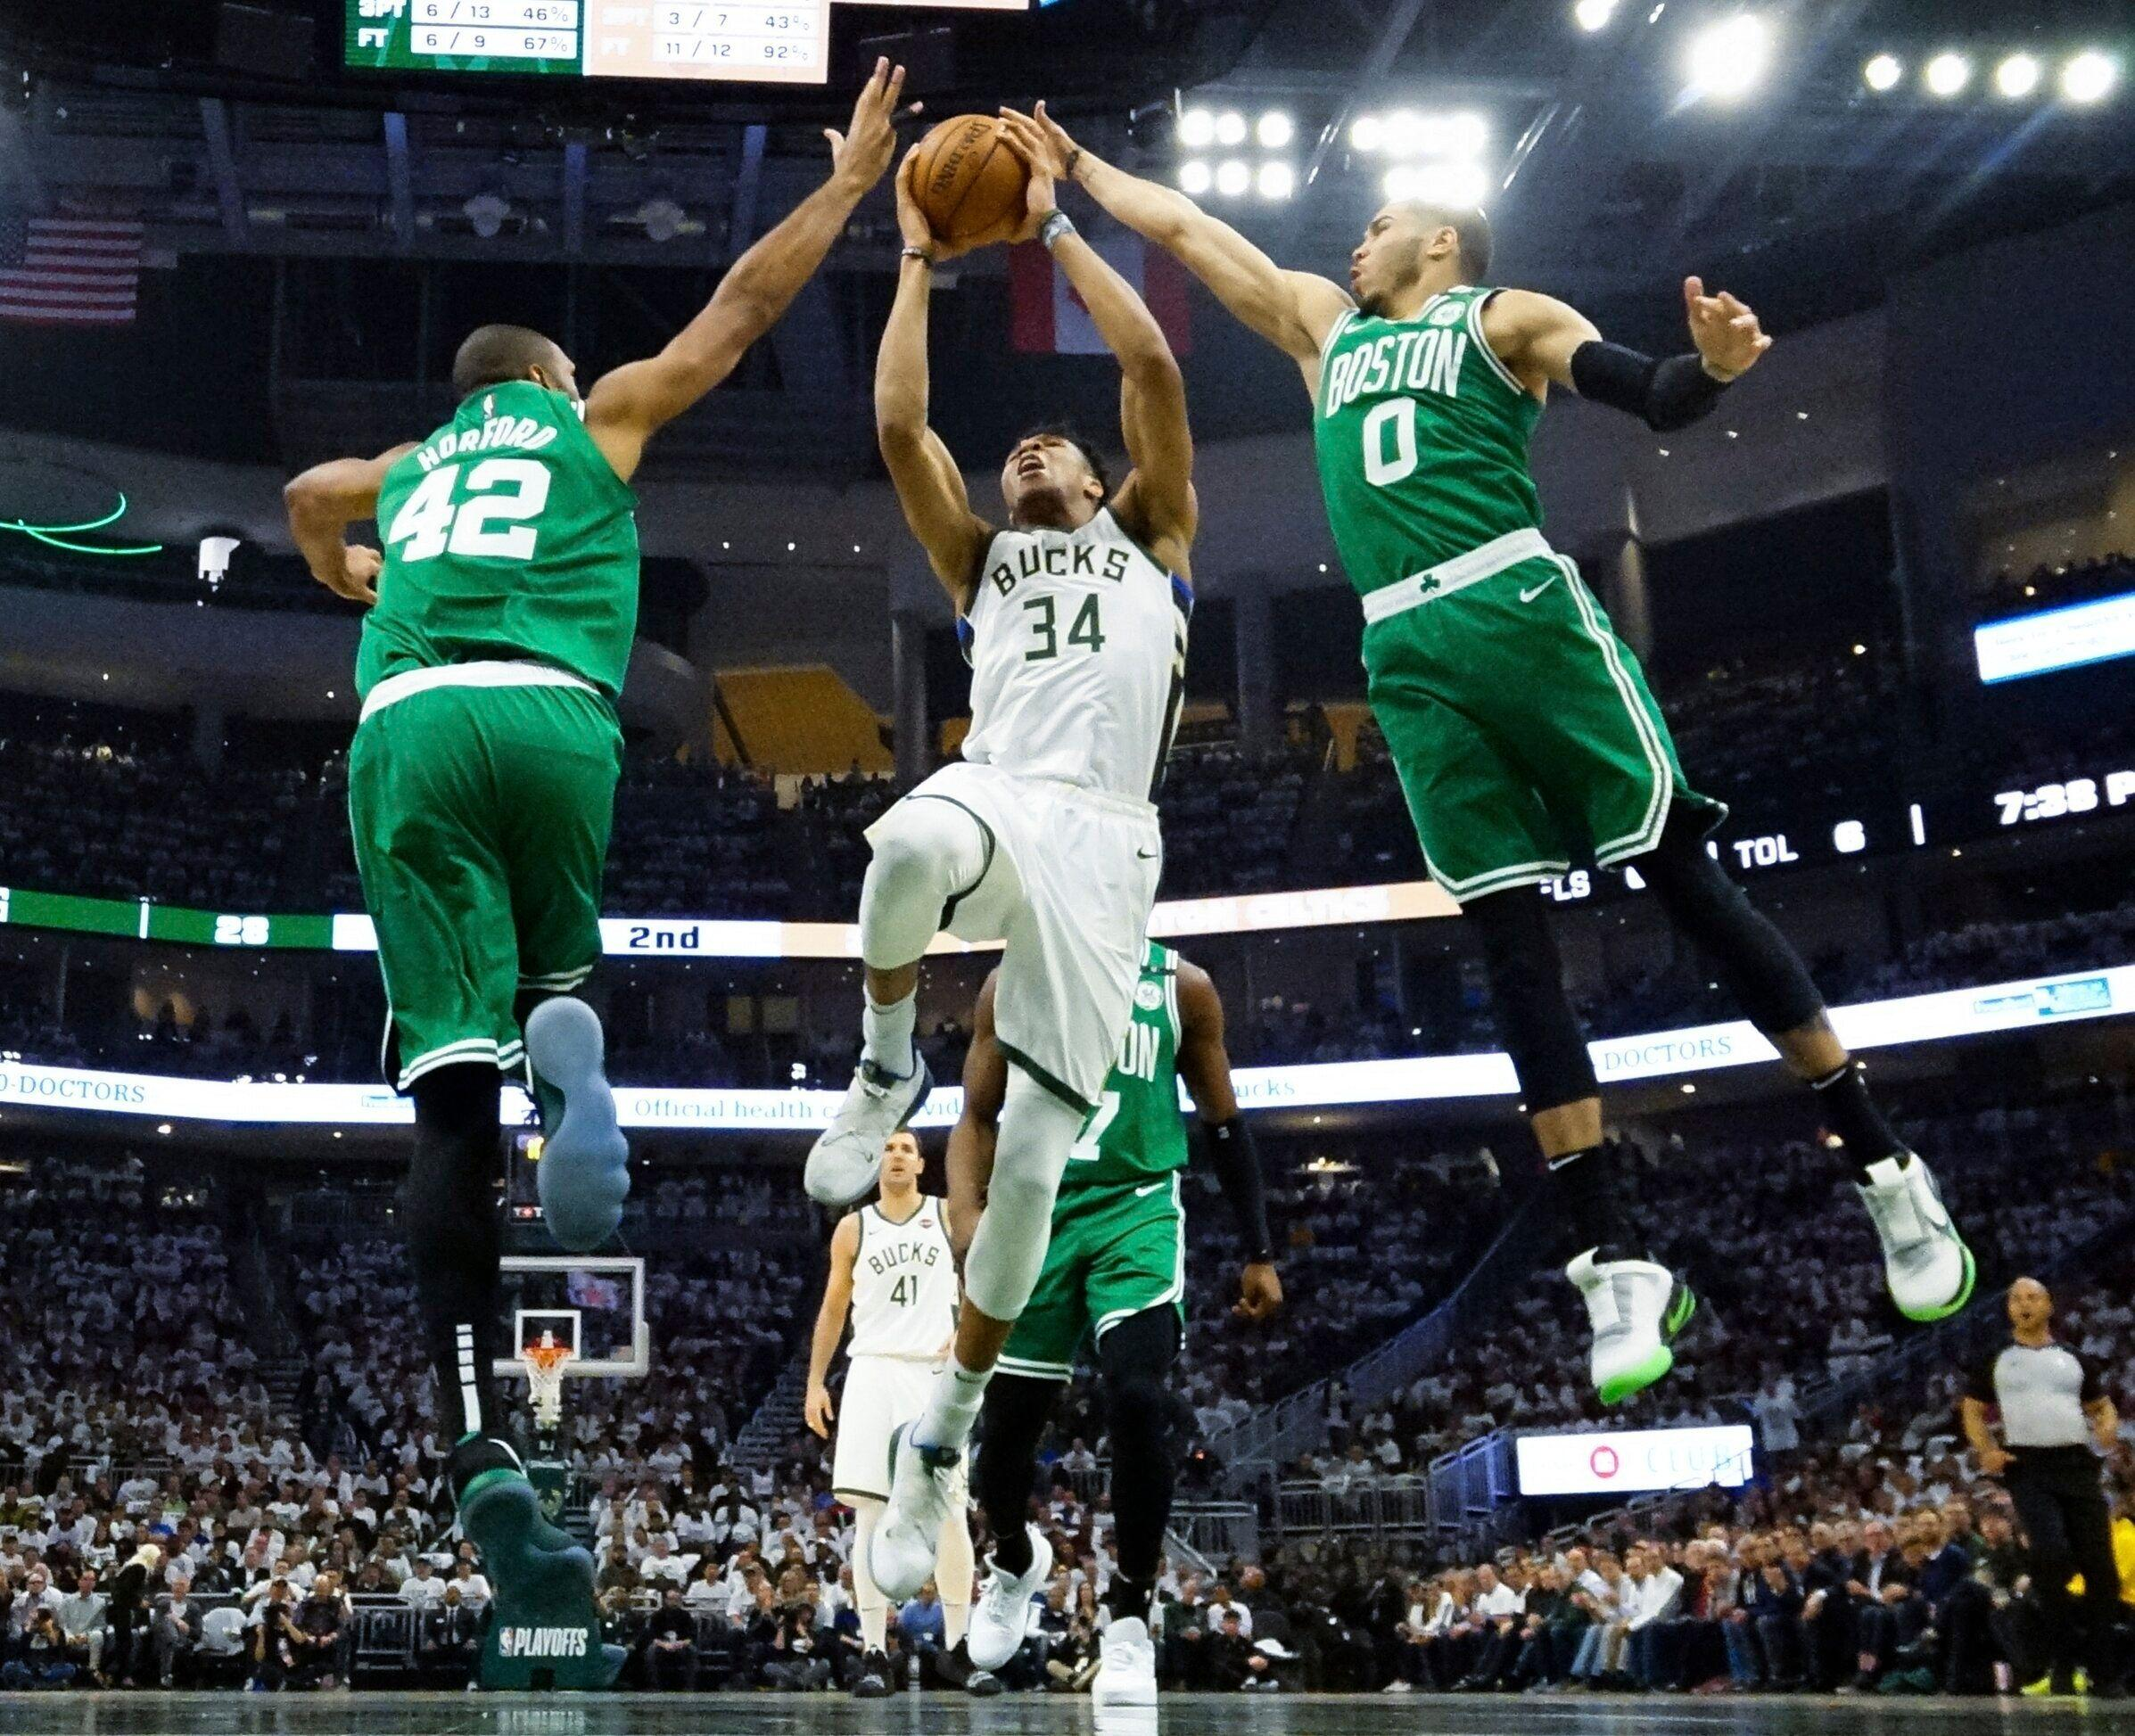 20f17e21ad4 Giannis Antetokounmpo announces his presence with authority in Game 2 of  East semis